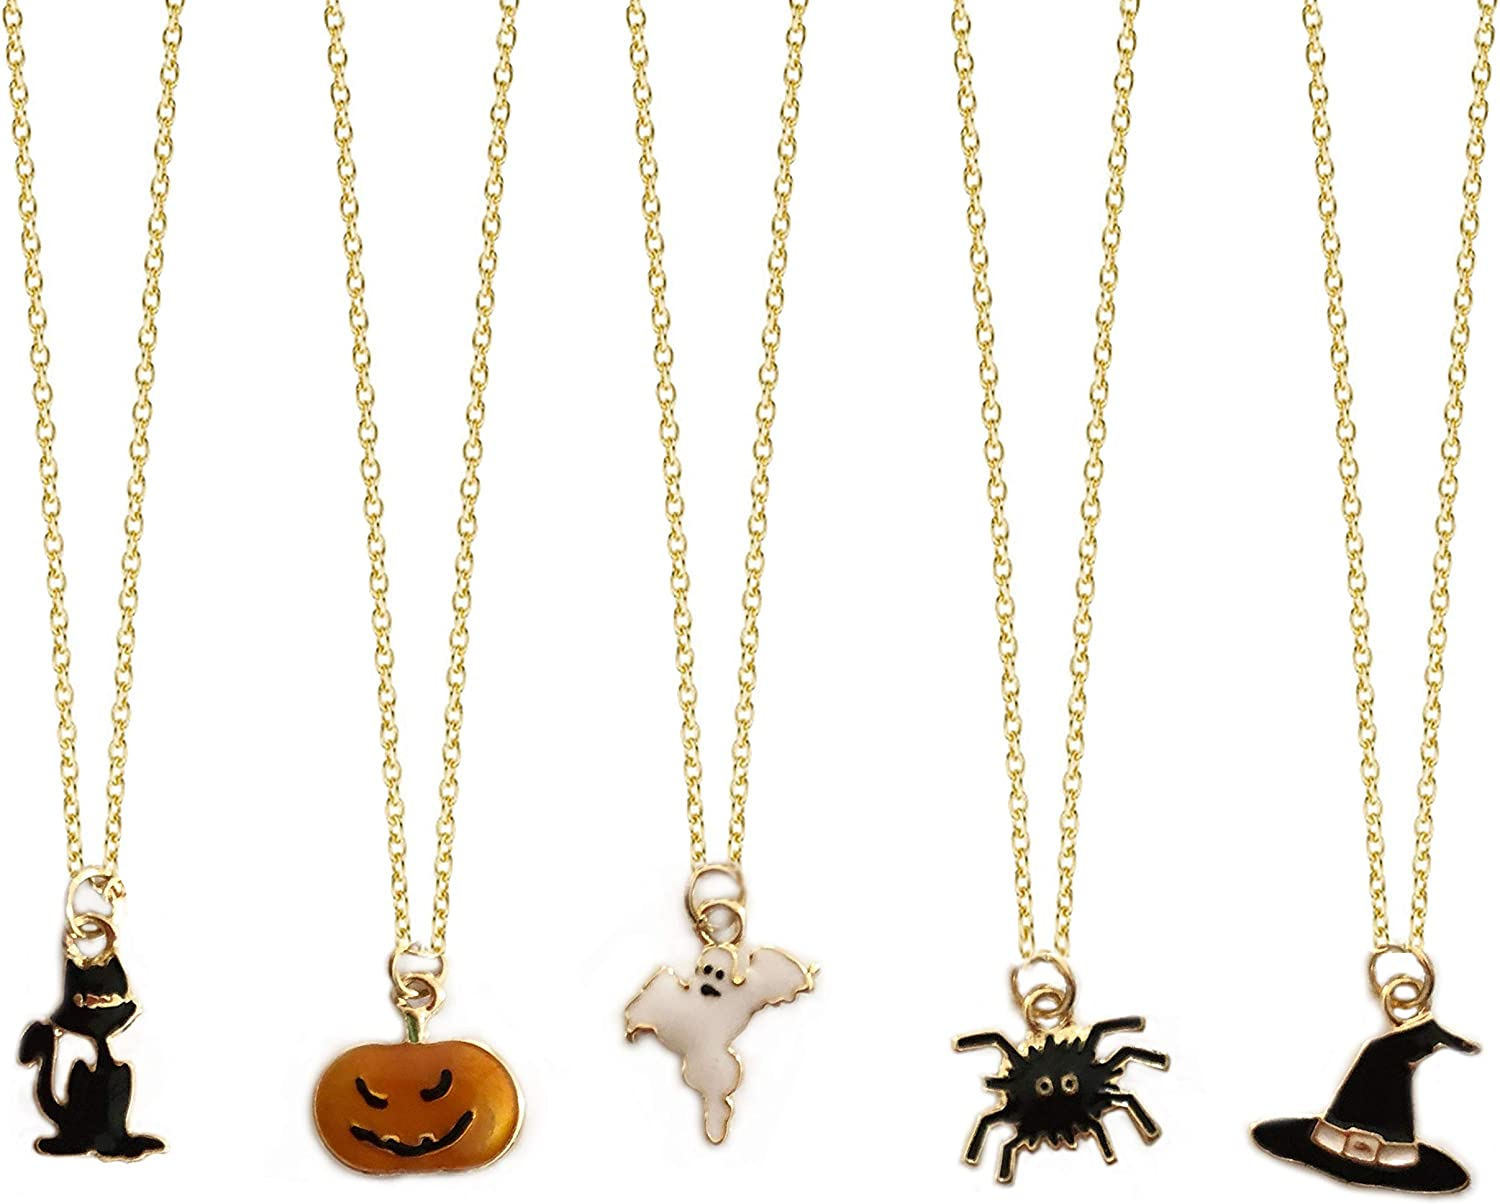 LUX ACCESSORIES Halloween Black Cat Spooky Pumpkin Ghost Spider Witch Hat Set of 5 Chain Necklaces